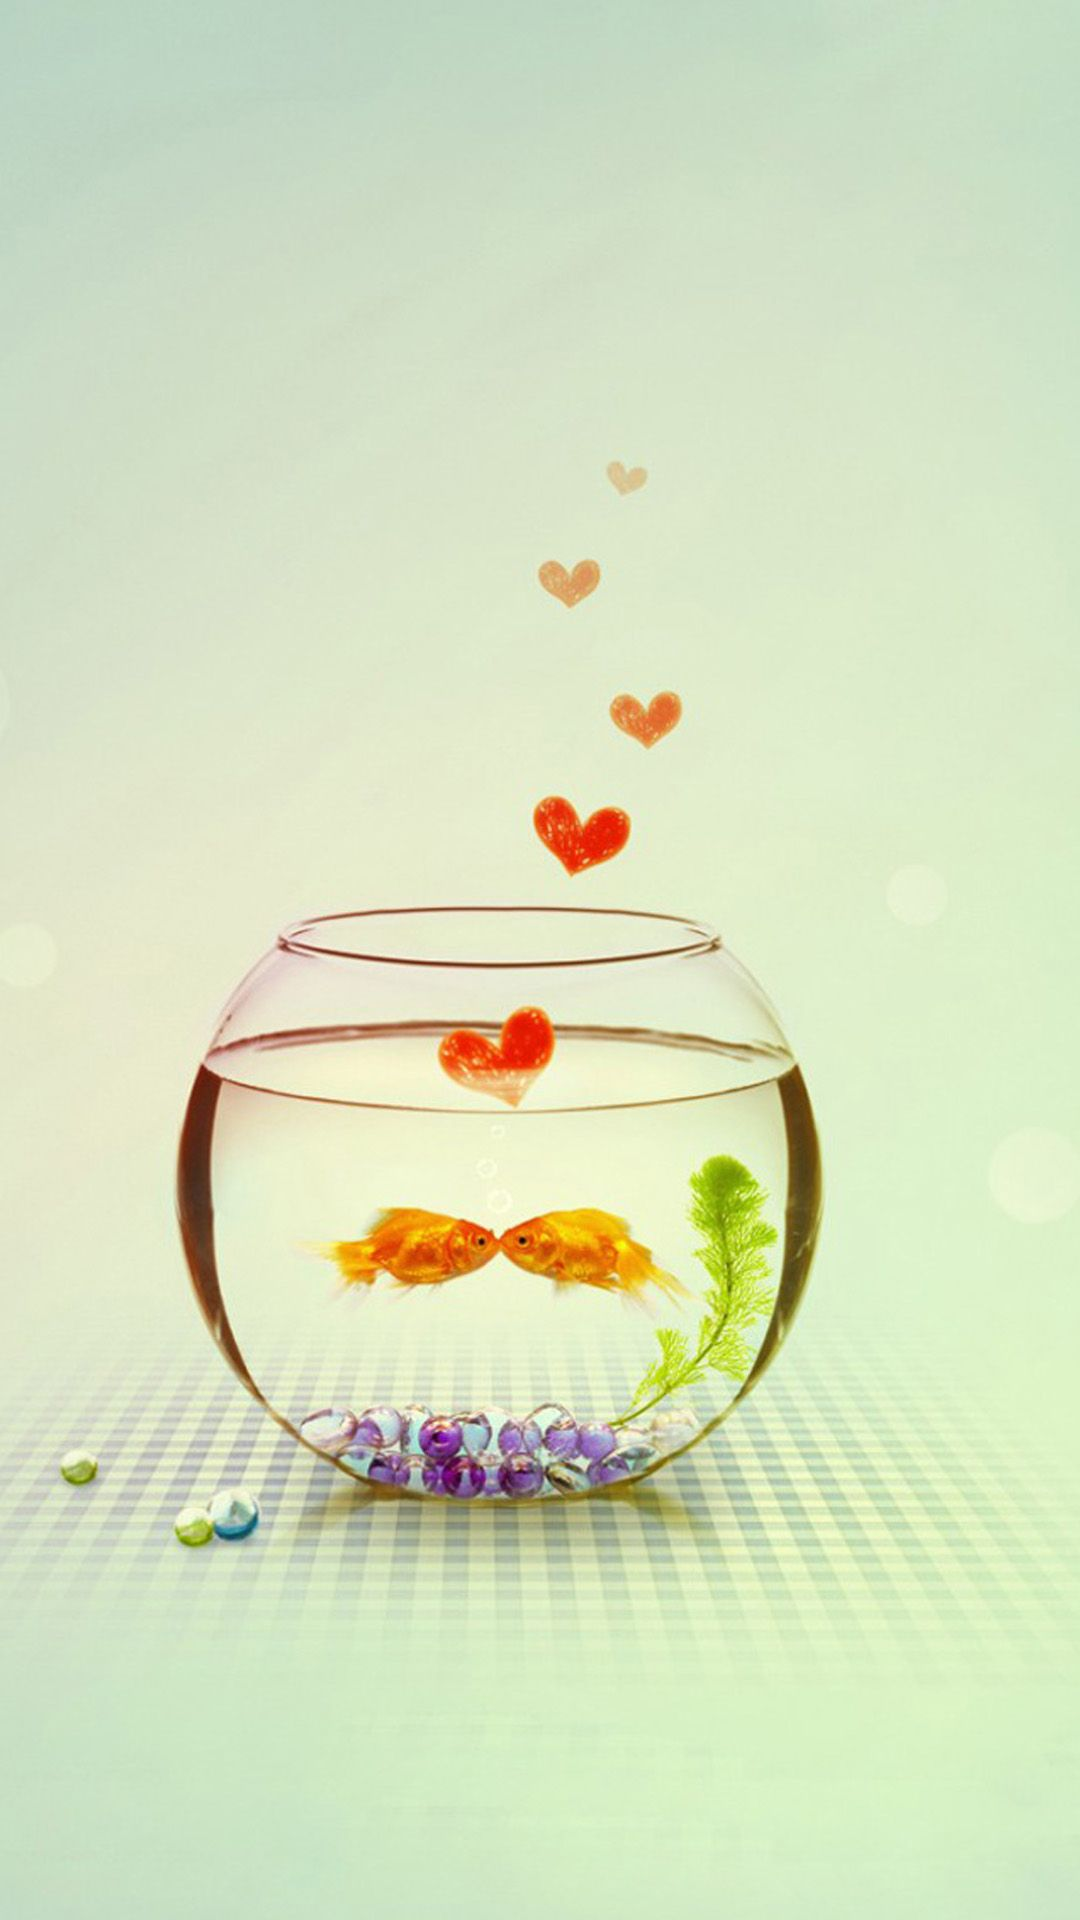 Kissing Love Fish Couple In Aquarium iPhone 7 wallpaper